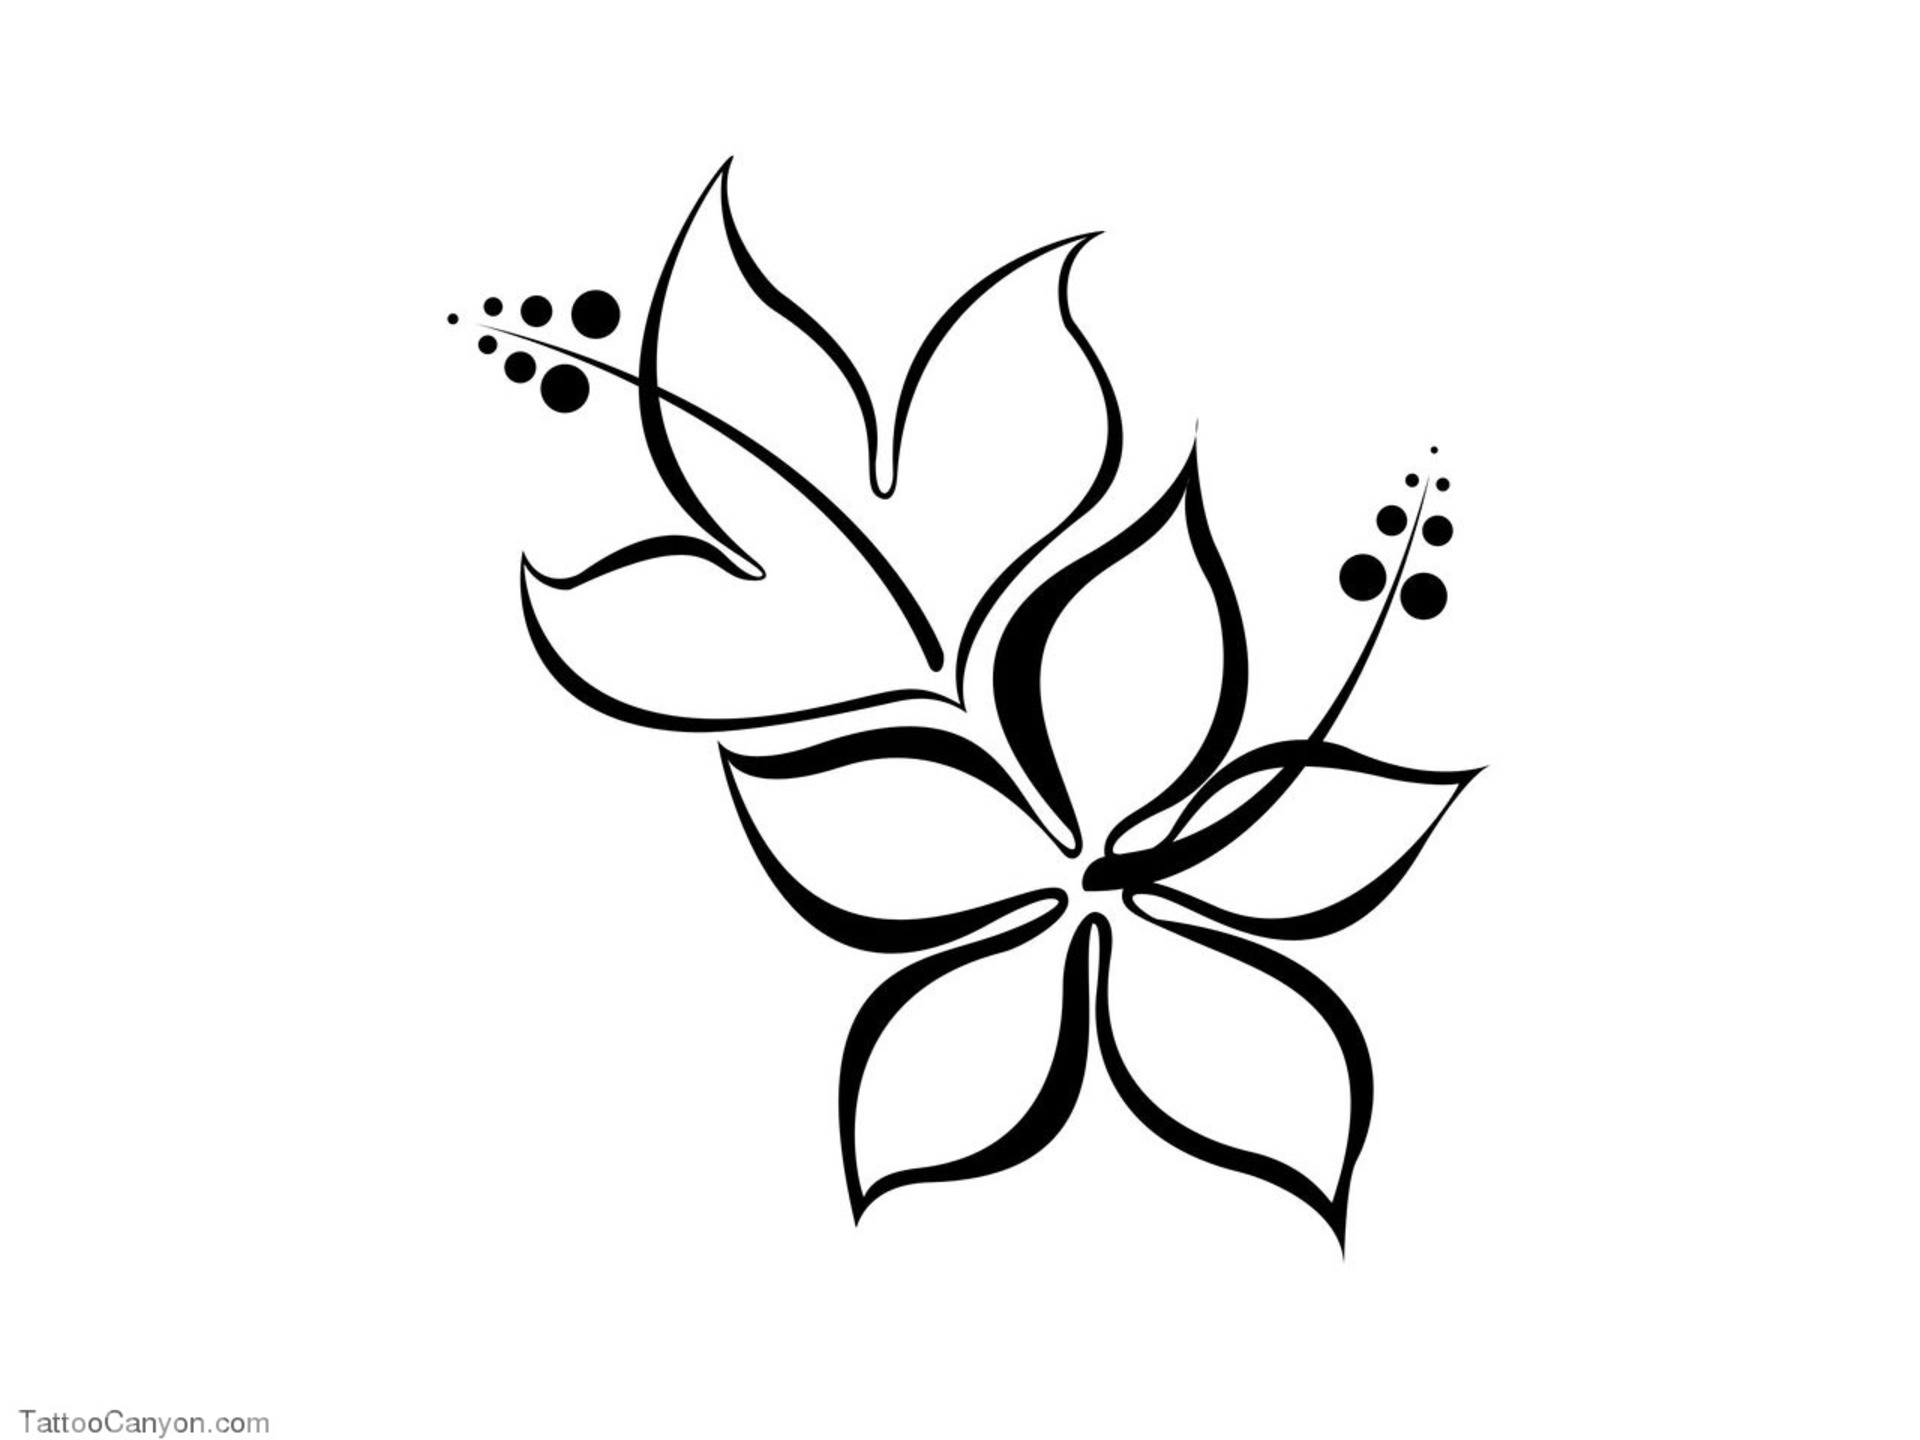 Tattoo flower clipart hd wallpaper png royalty free Free Designs Hibiscus Flower Tattoo Wallpaper Picture ... png royalty free